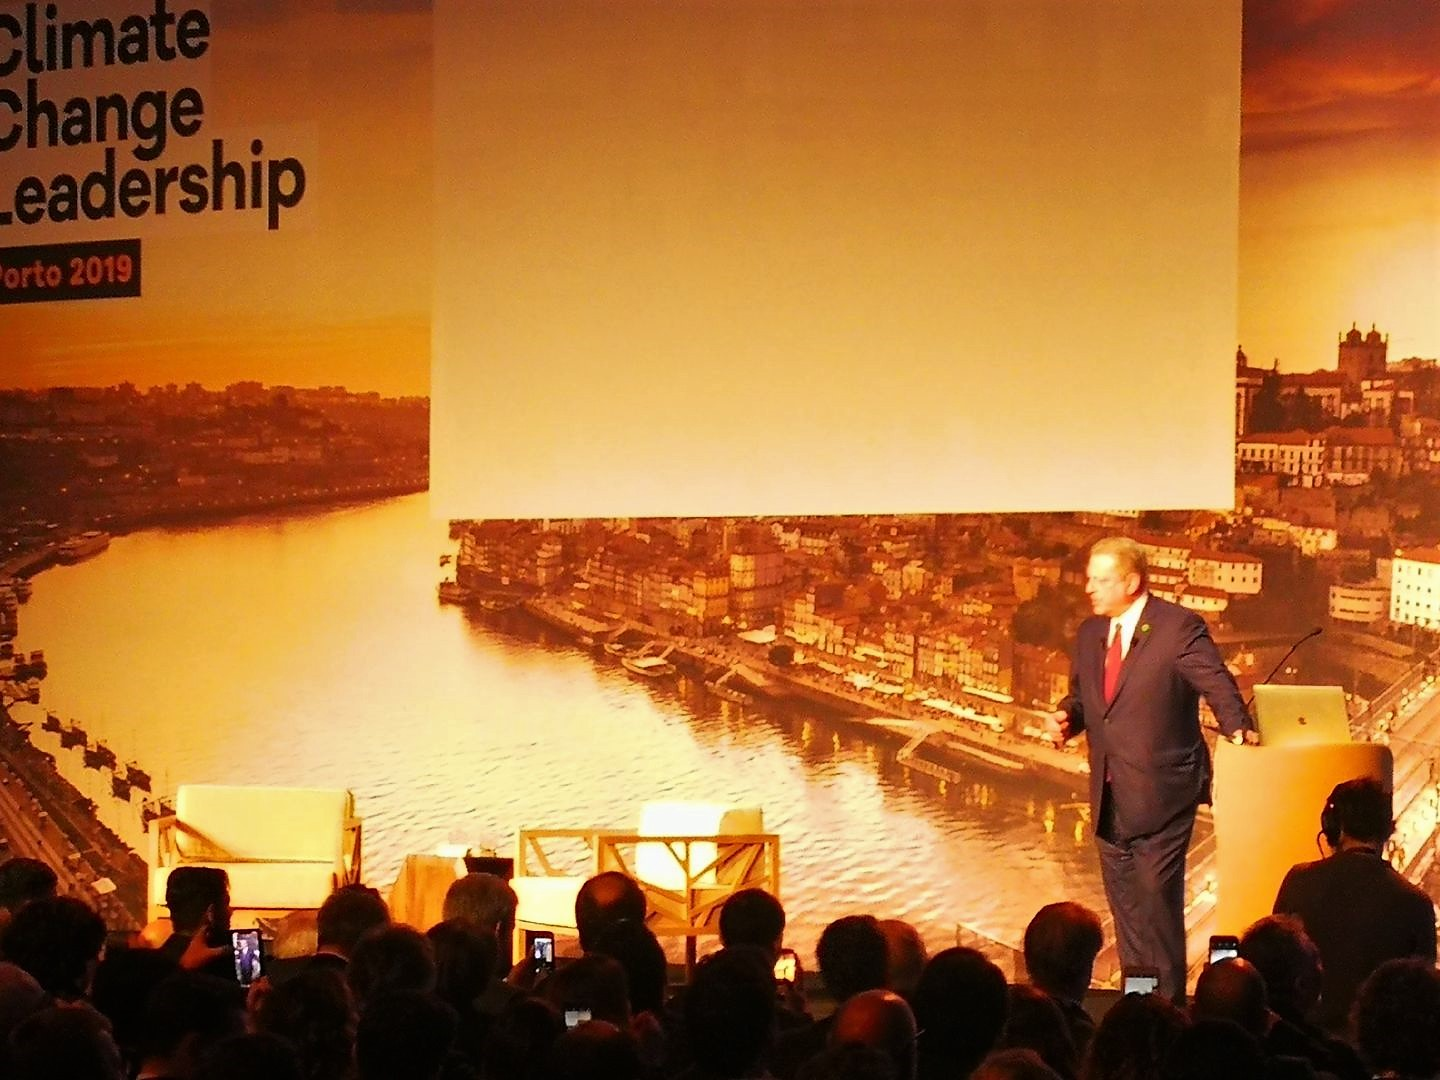 Climate Change Leadership Conferece with Al Gore